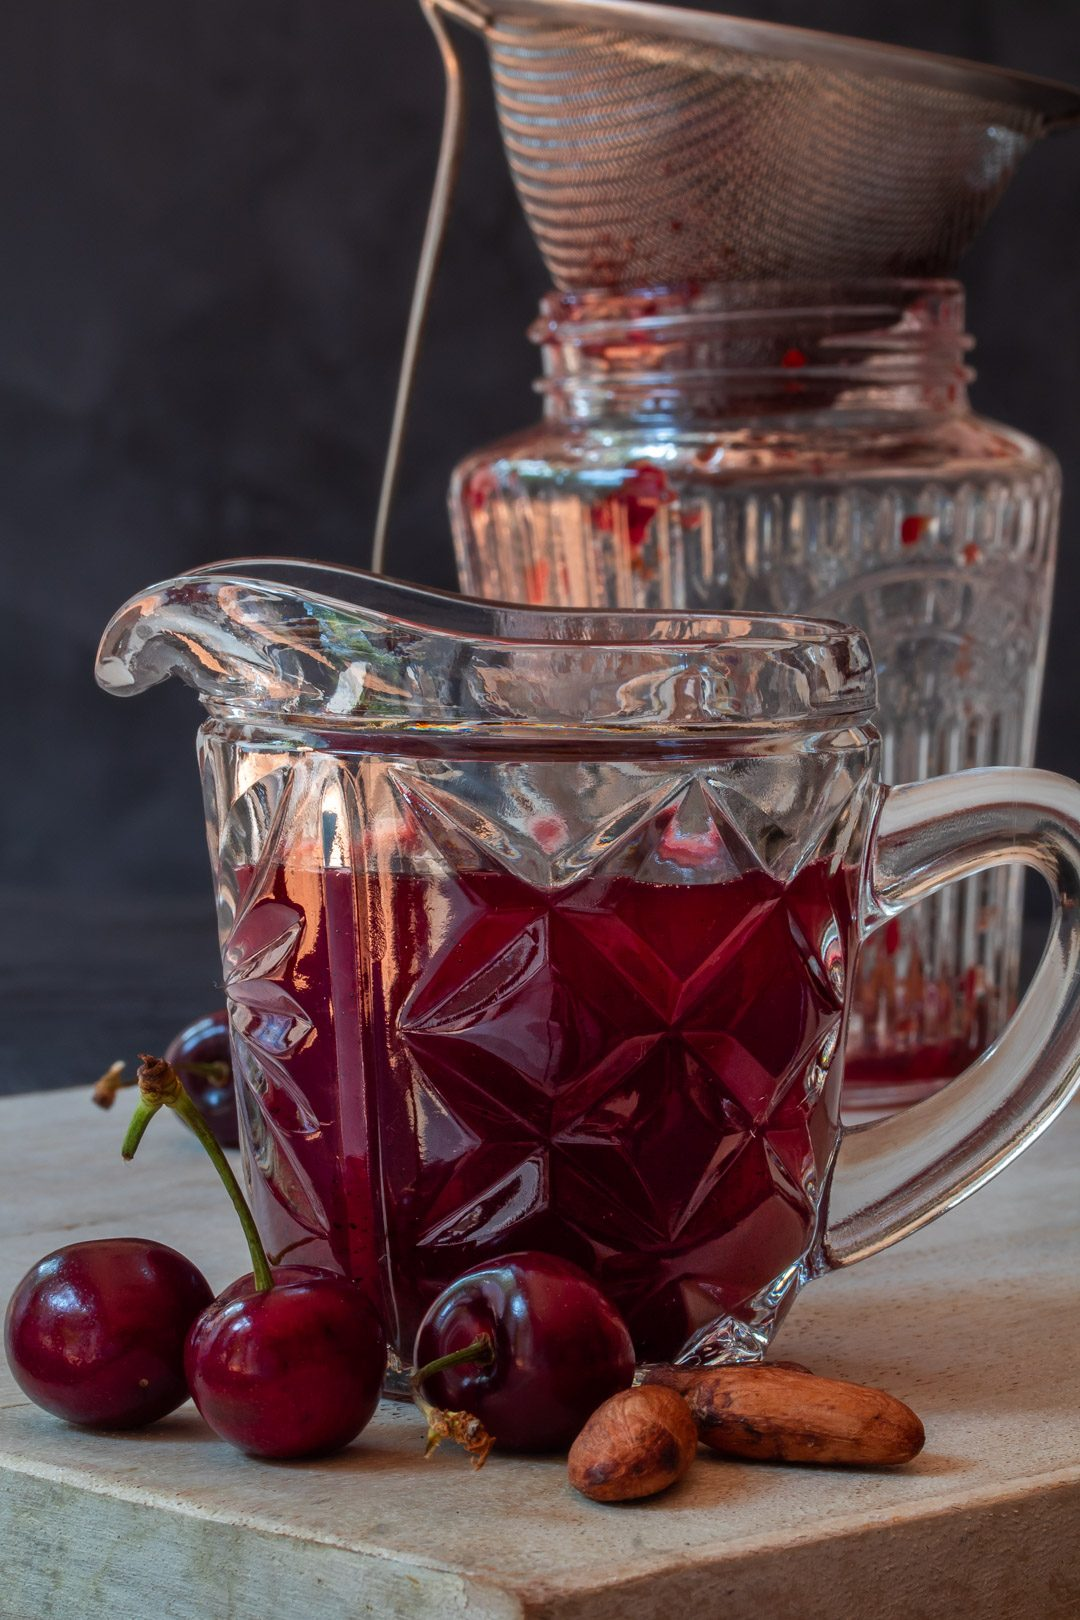 cherry shrub syrup in vintage cut glass jug for cherry shrub brandy daisy